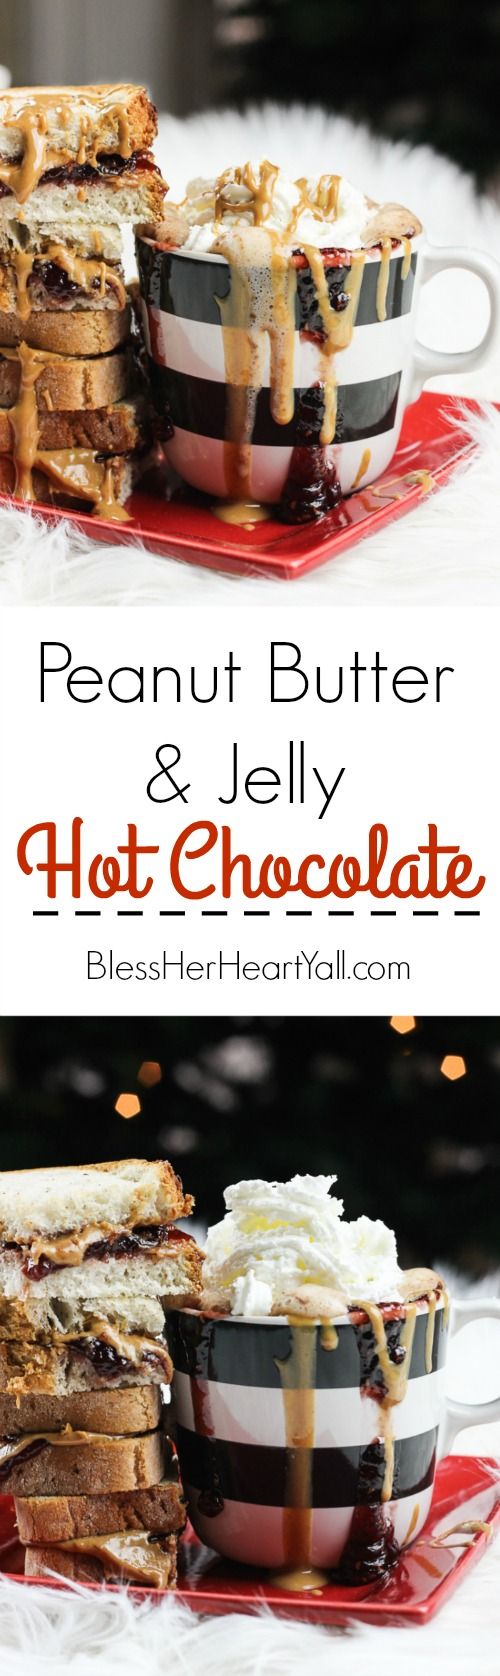 This peanut butter and jelly hot chocolate is a decadent and rich twist on the classic hot chocolate. Melting smooth chocolate with creamy peanut butter and sweetened with your favorite berry flavor, (and of course topped with whipped cream and other goodies!) make this an instant cold-weathered favorite.